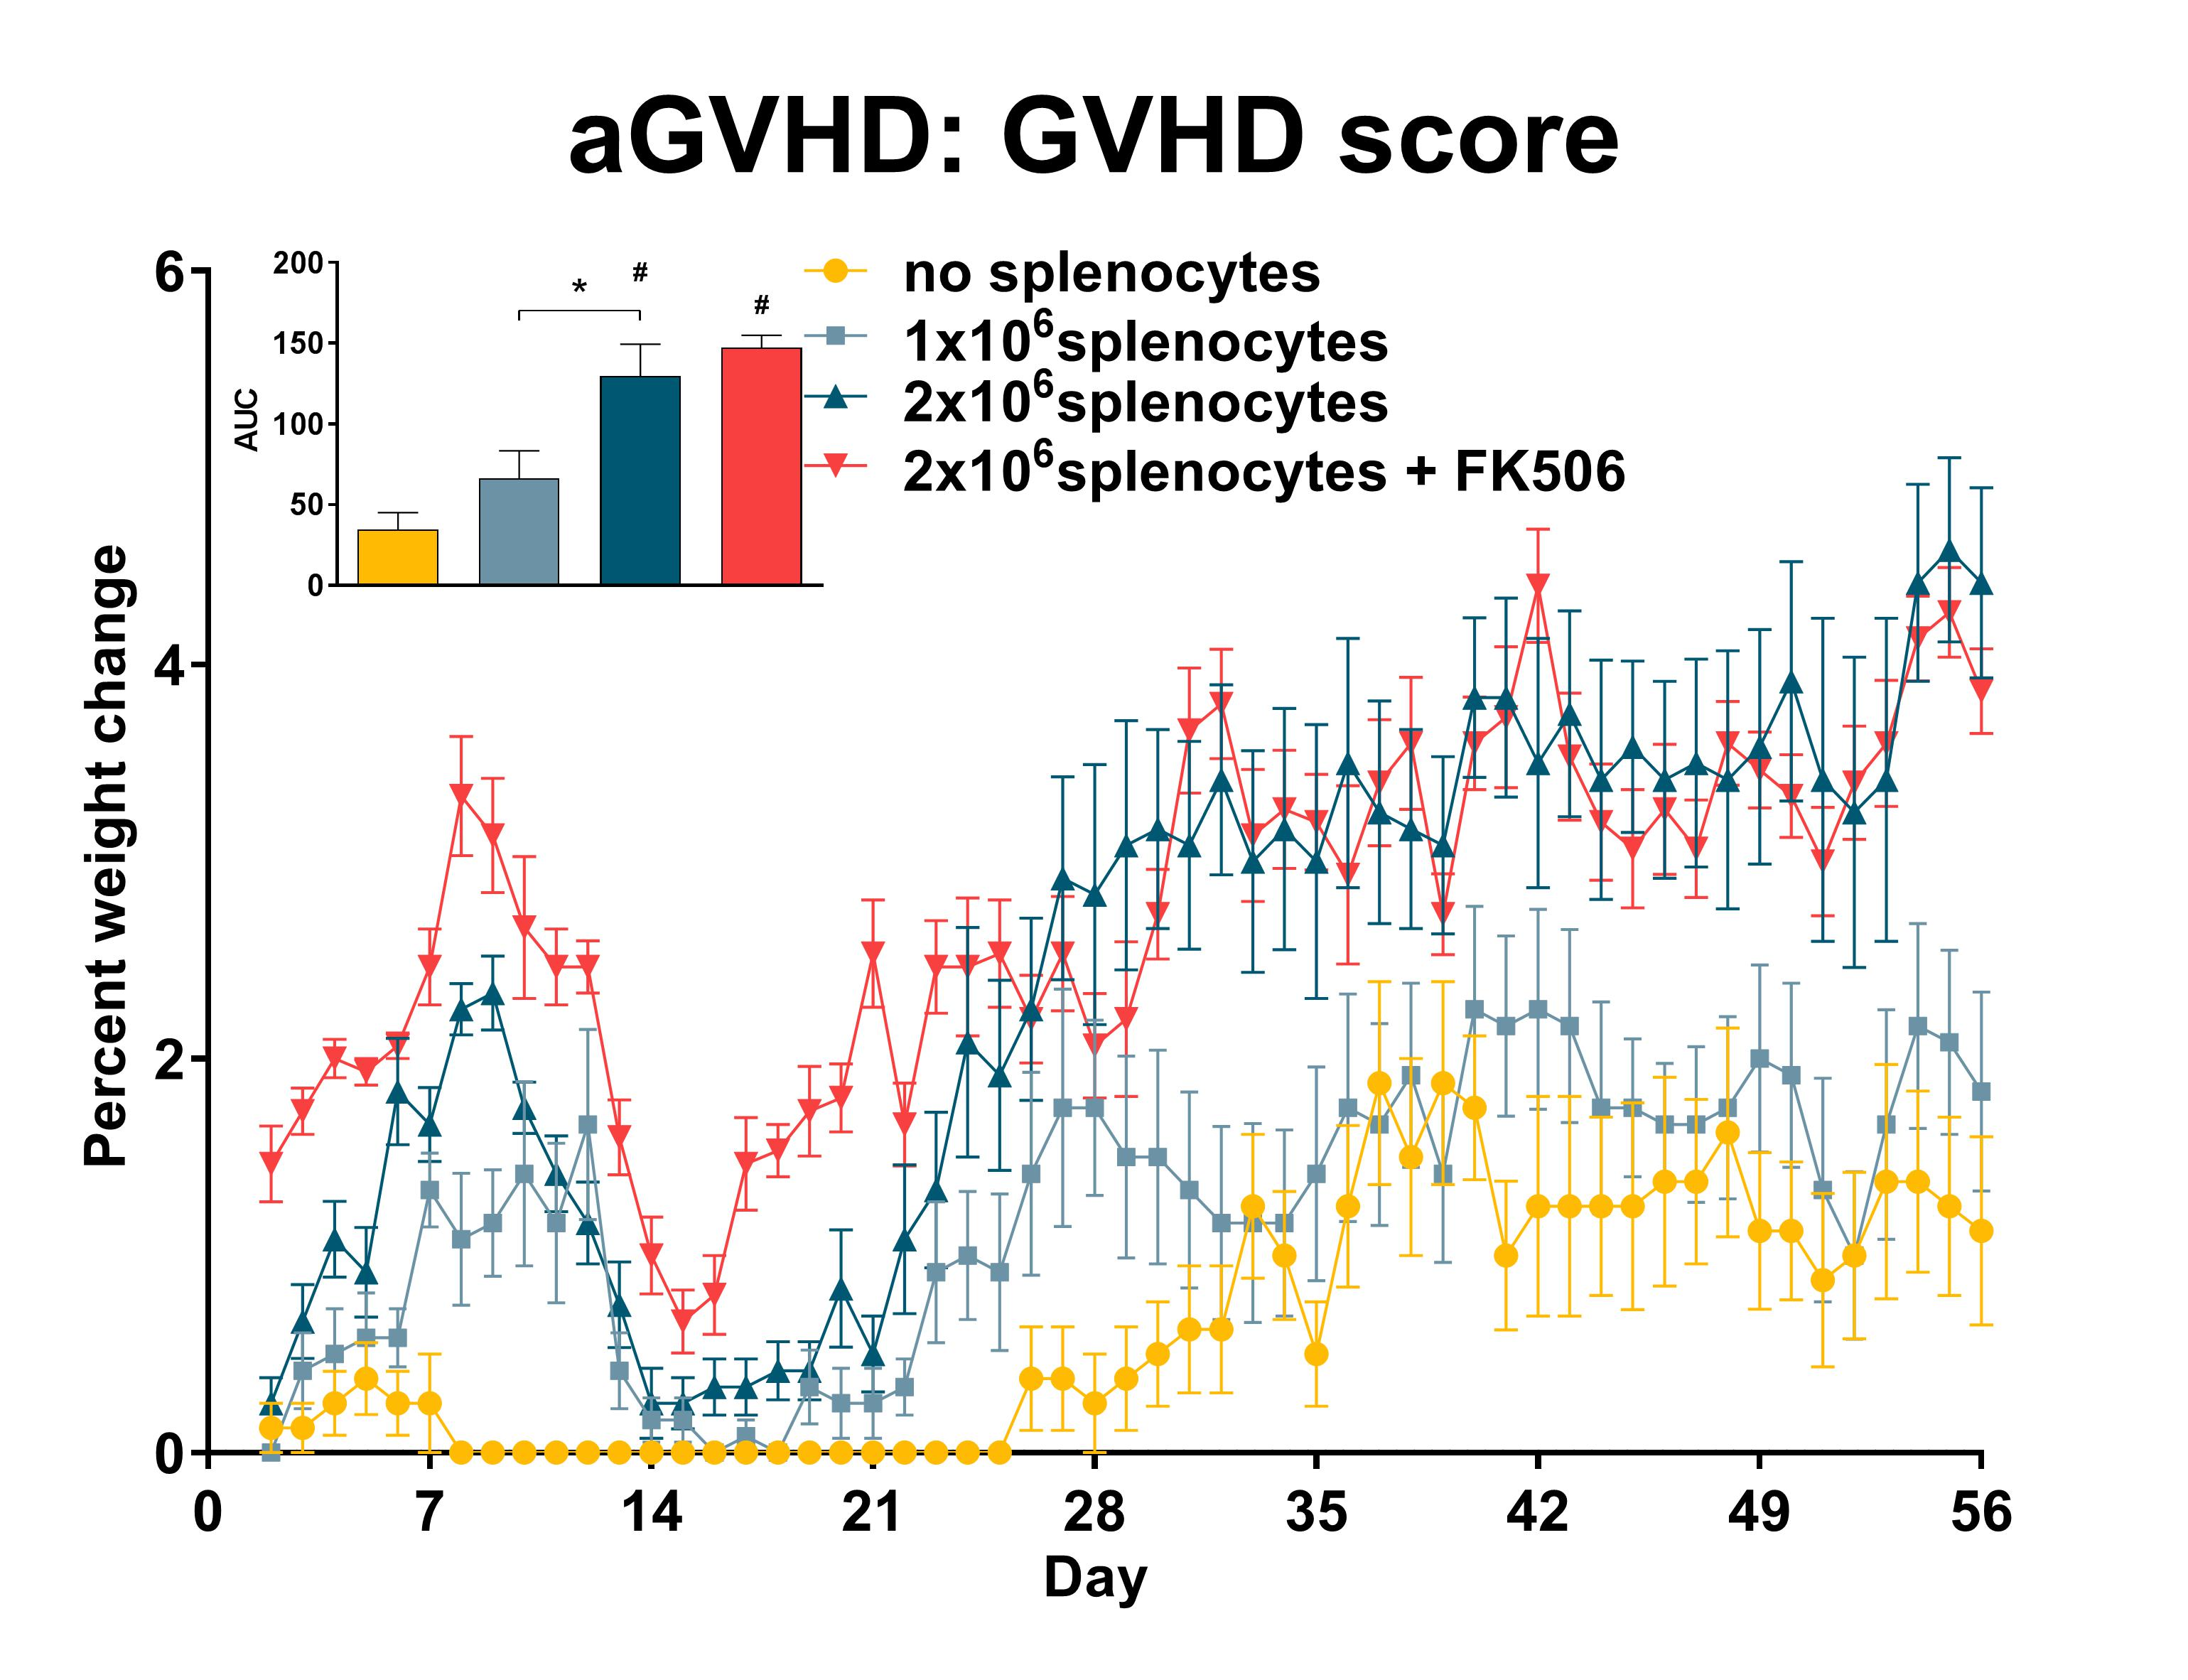 Recipient mice were pre-conditioned and transplanted with 1x107donor-derived CD3-depleted bone marrow cells supplemented with different numbers of splenocytes (see legend) on day 0. GVHD score was recorded daily. Statistical evaluation by one-way ANOVA with Holm-Šidák's multiple comparison post-test. *: p<0.05 comparing indicated groups; #: p<0.05 comparing indicated groups to the 'no splenocytes' control. AUC: area under the curve; n=15 per group; data is presented as mean ±SEM. AUC: area under the curve;